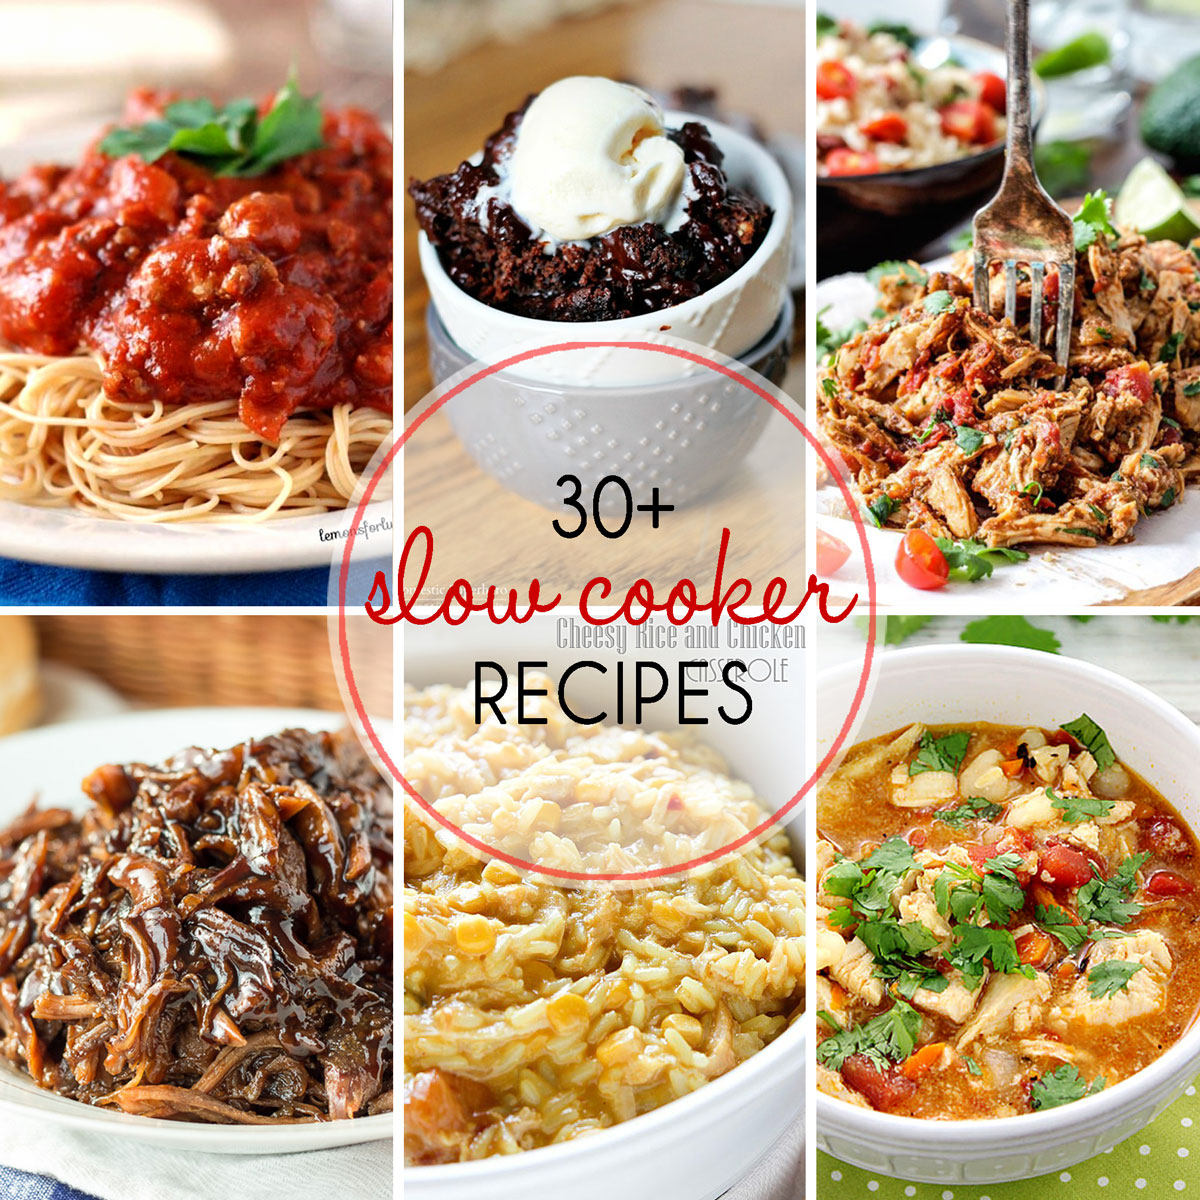 Slow Cooker Recipe Round Up, found on cravingsofalunatic.com- This round up has over 30 Slow Cooker Recipes that will make everyone happy. Pull out that slow cooker and work your way through this fabulous list of recipes. (@CravingsLunatic)